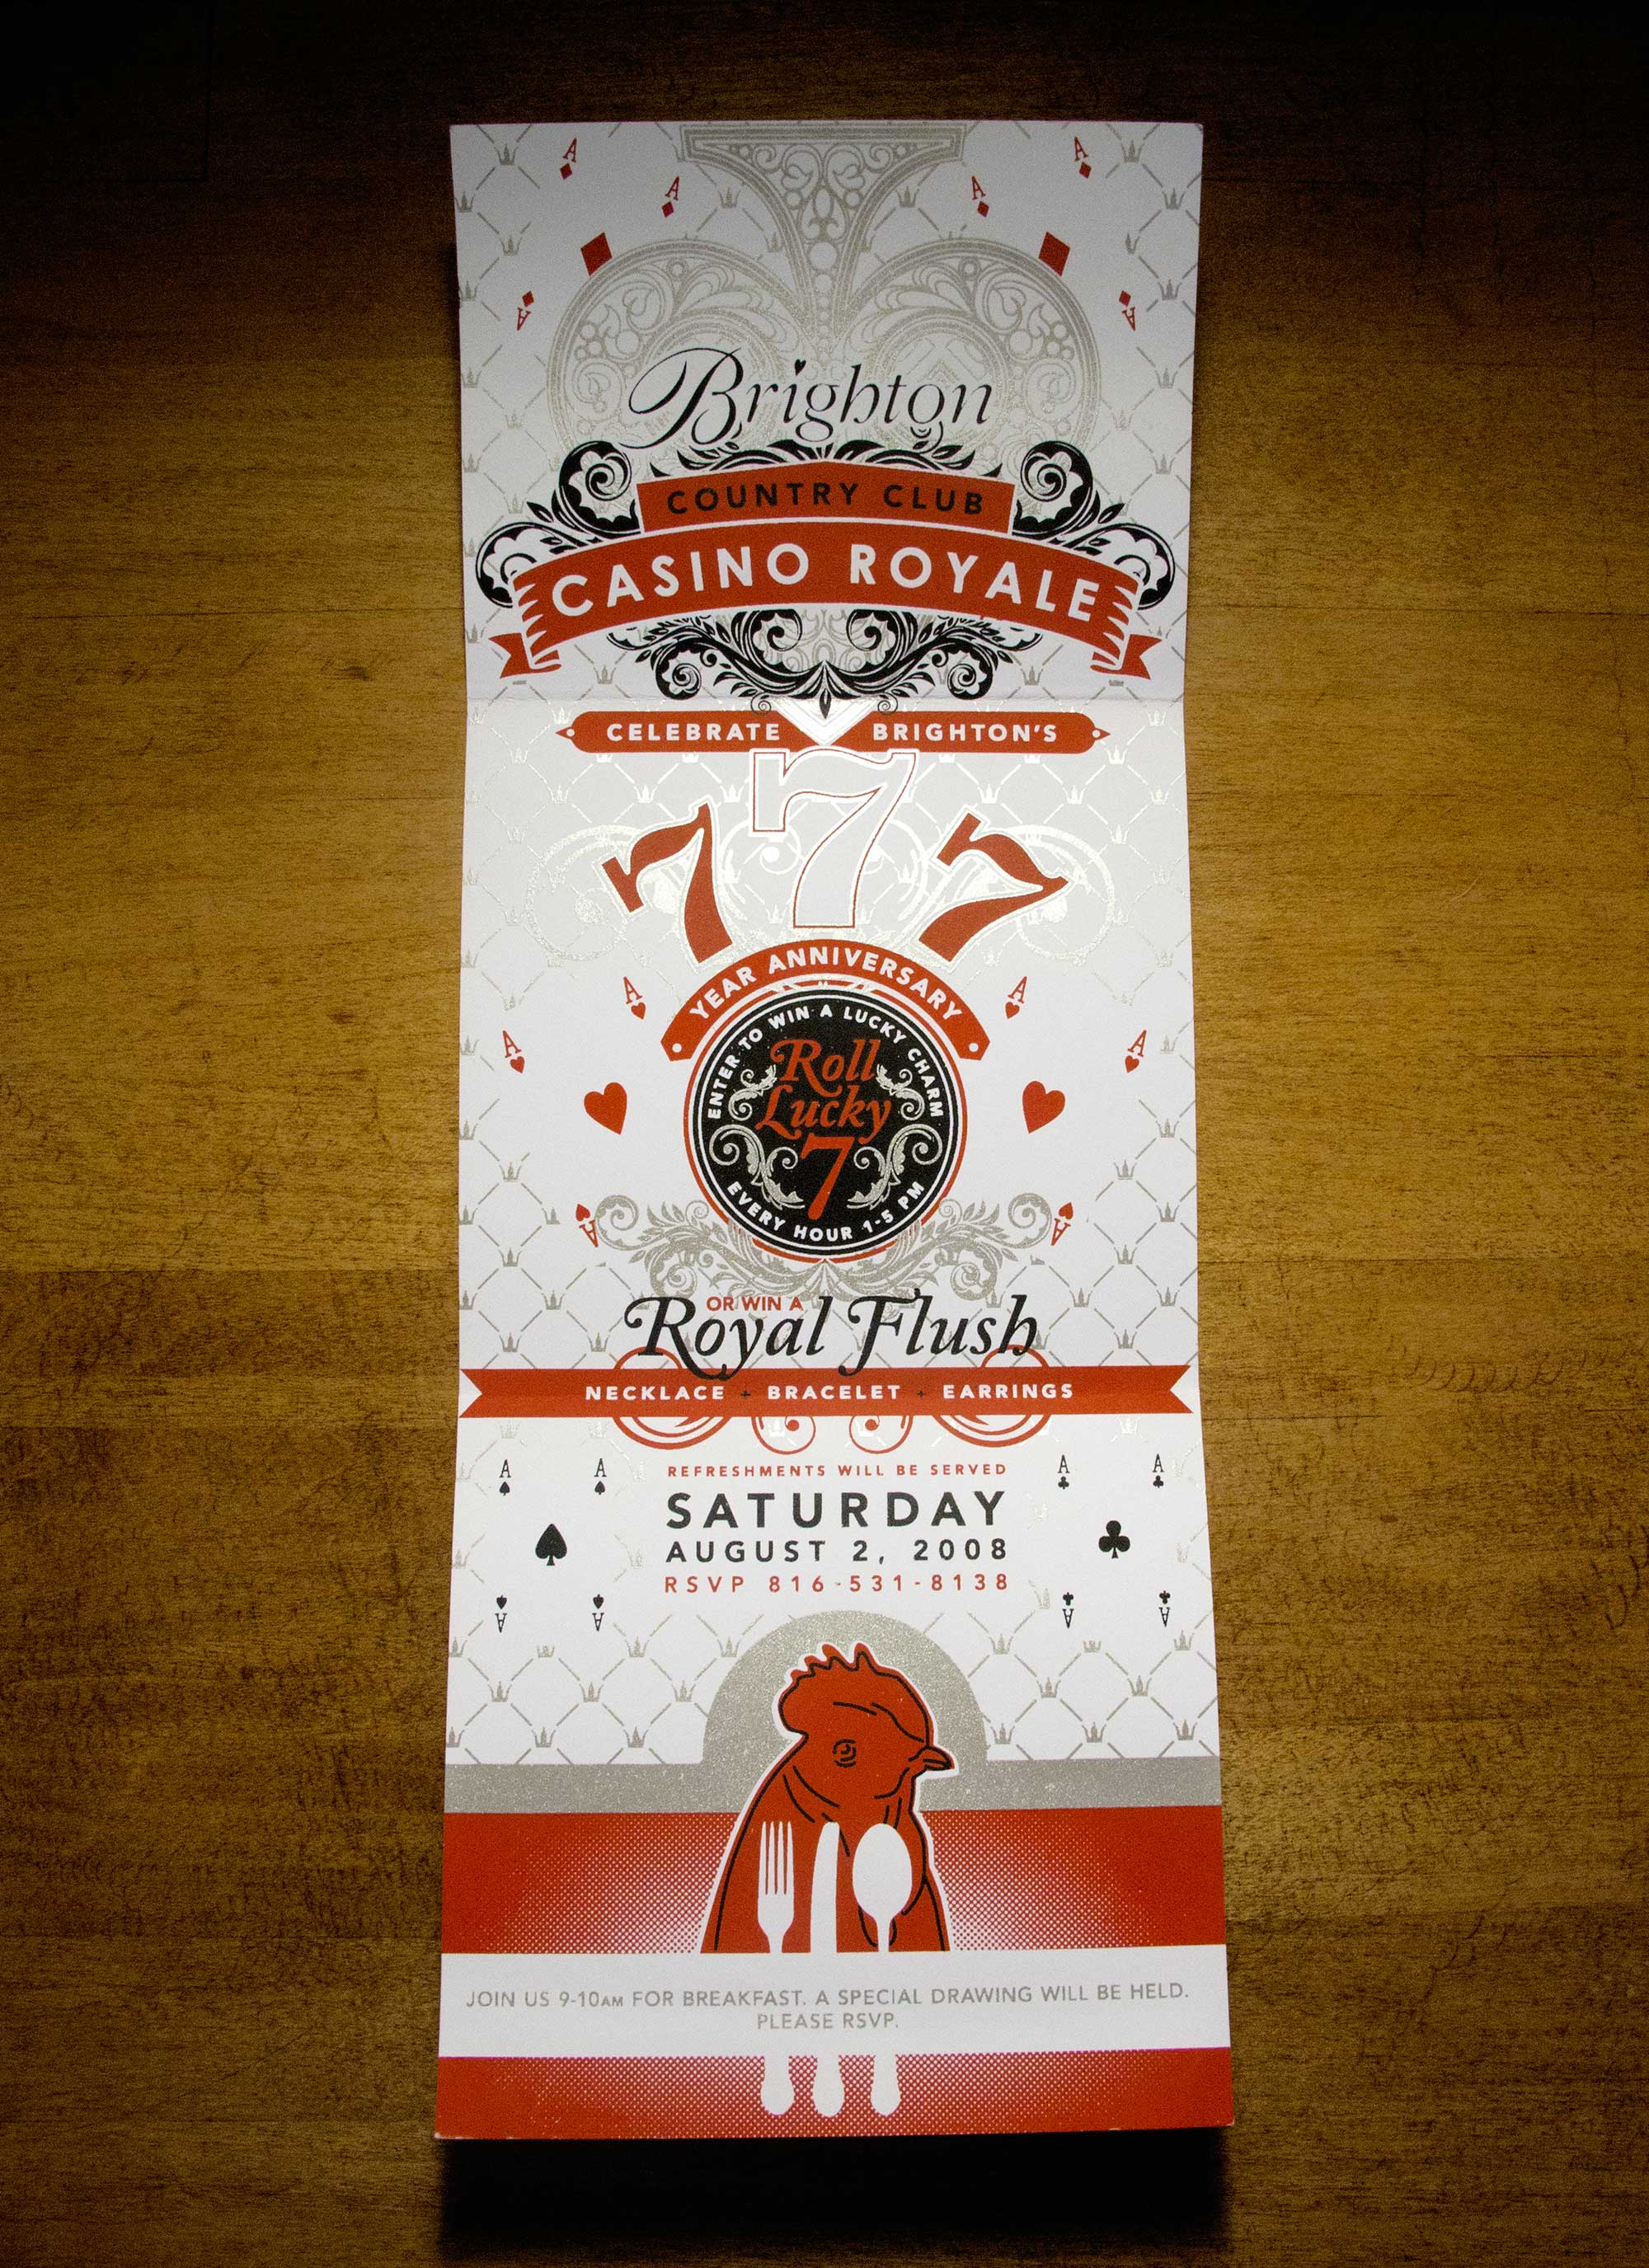 Red, silver and black 3-color screen printed invitation for Brighton Collectibles' Casino Royale party in the Kansas City Country Club Plaza